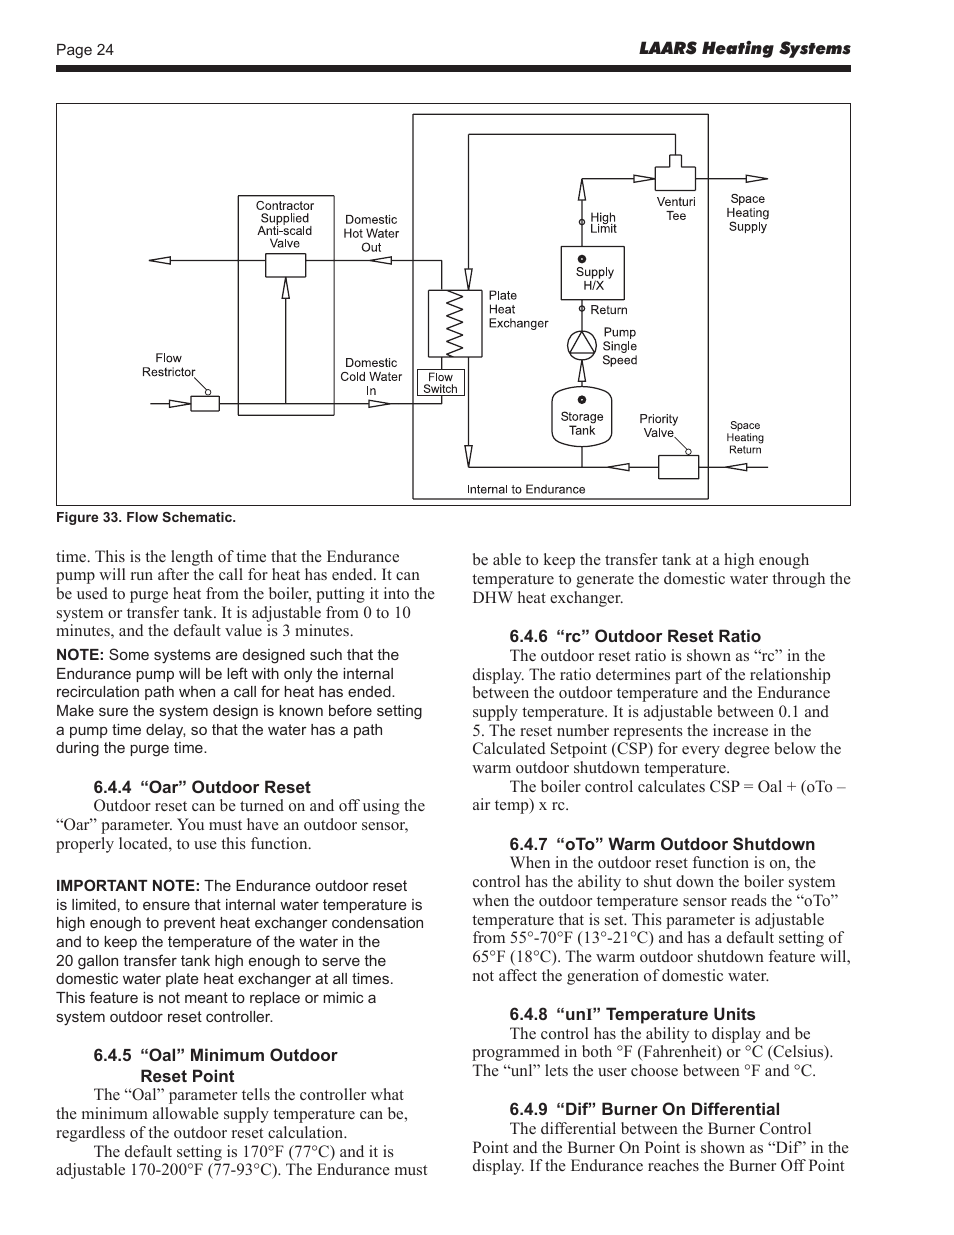 comfortable boiler maintenance manual photos the best electrical basic electrical schematic diagrams laars ebp 175 mbtu h installation, operation and maintenance